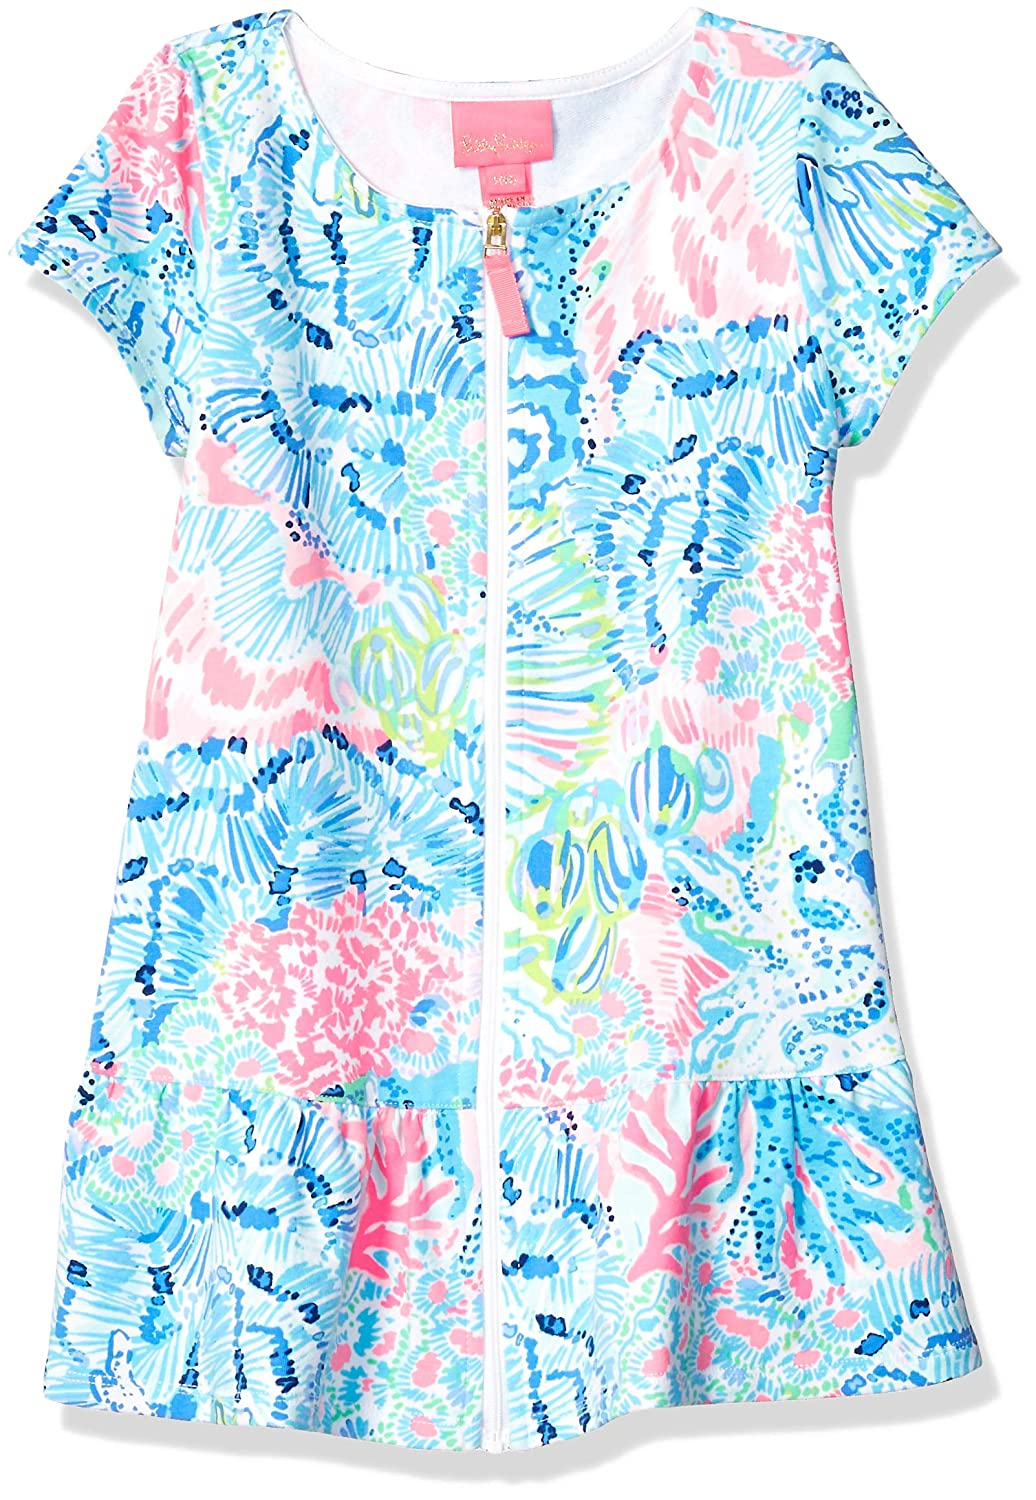 Ivy Cover Up Multi Sink Or Swim Lilly Pulitzer Girls Big UPF 50